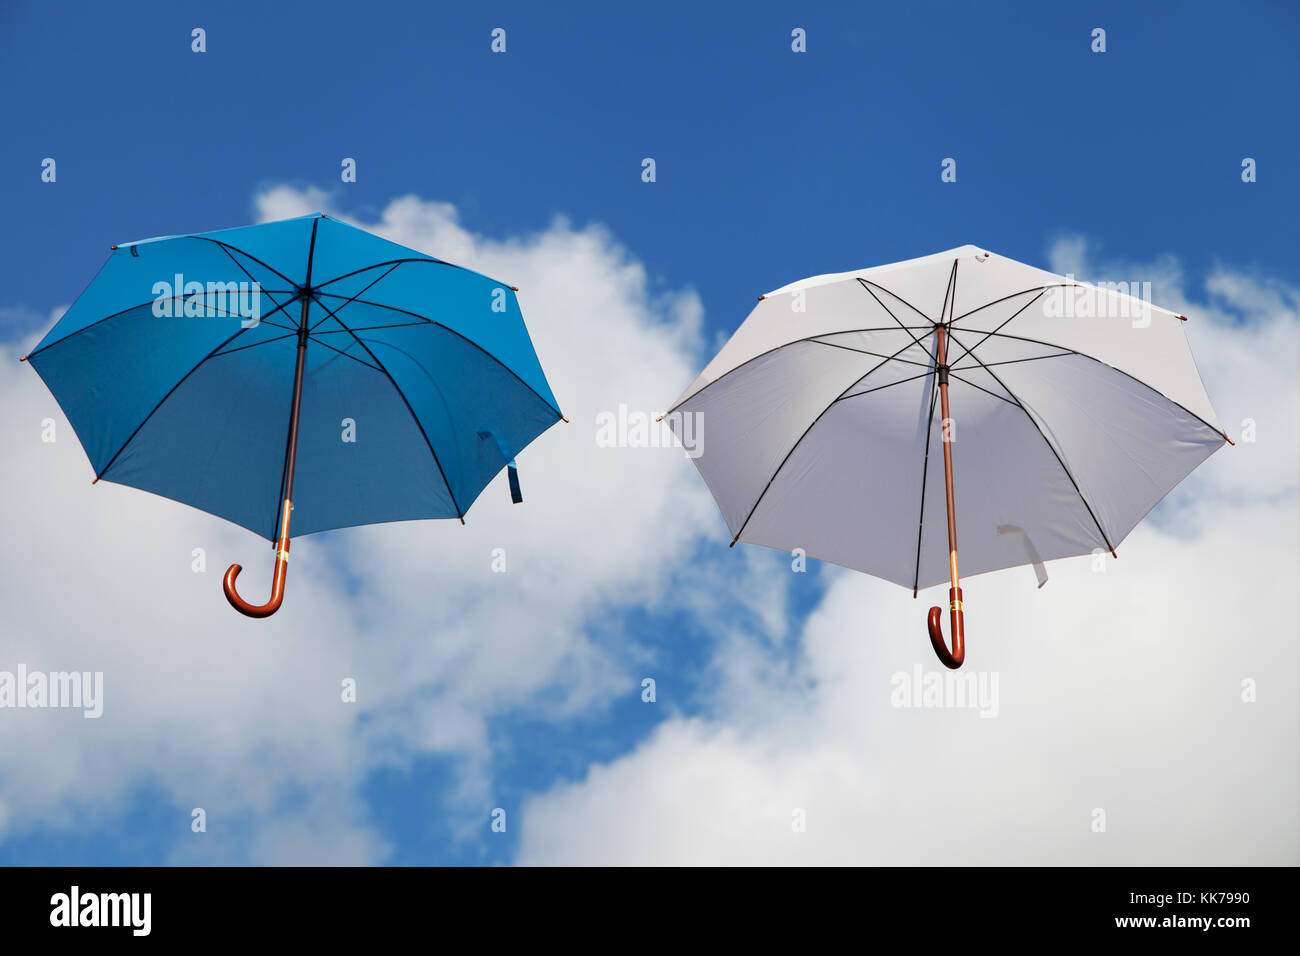 Two Floating Umbrellas in Blue and White - Stock Image